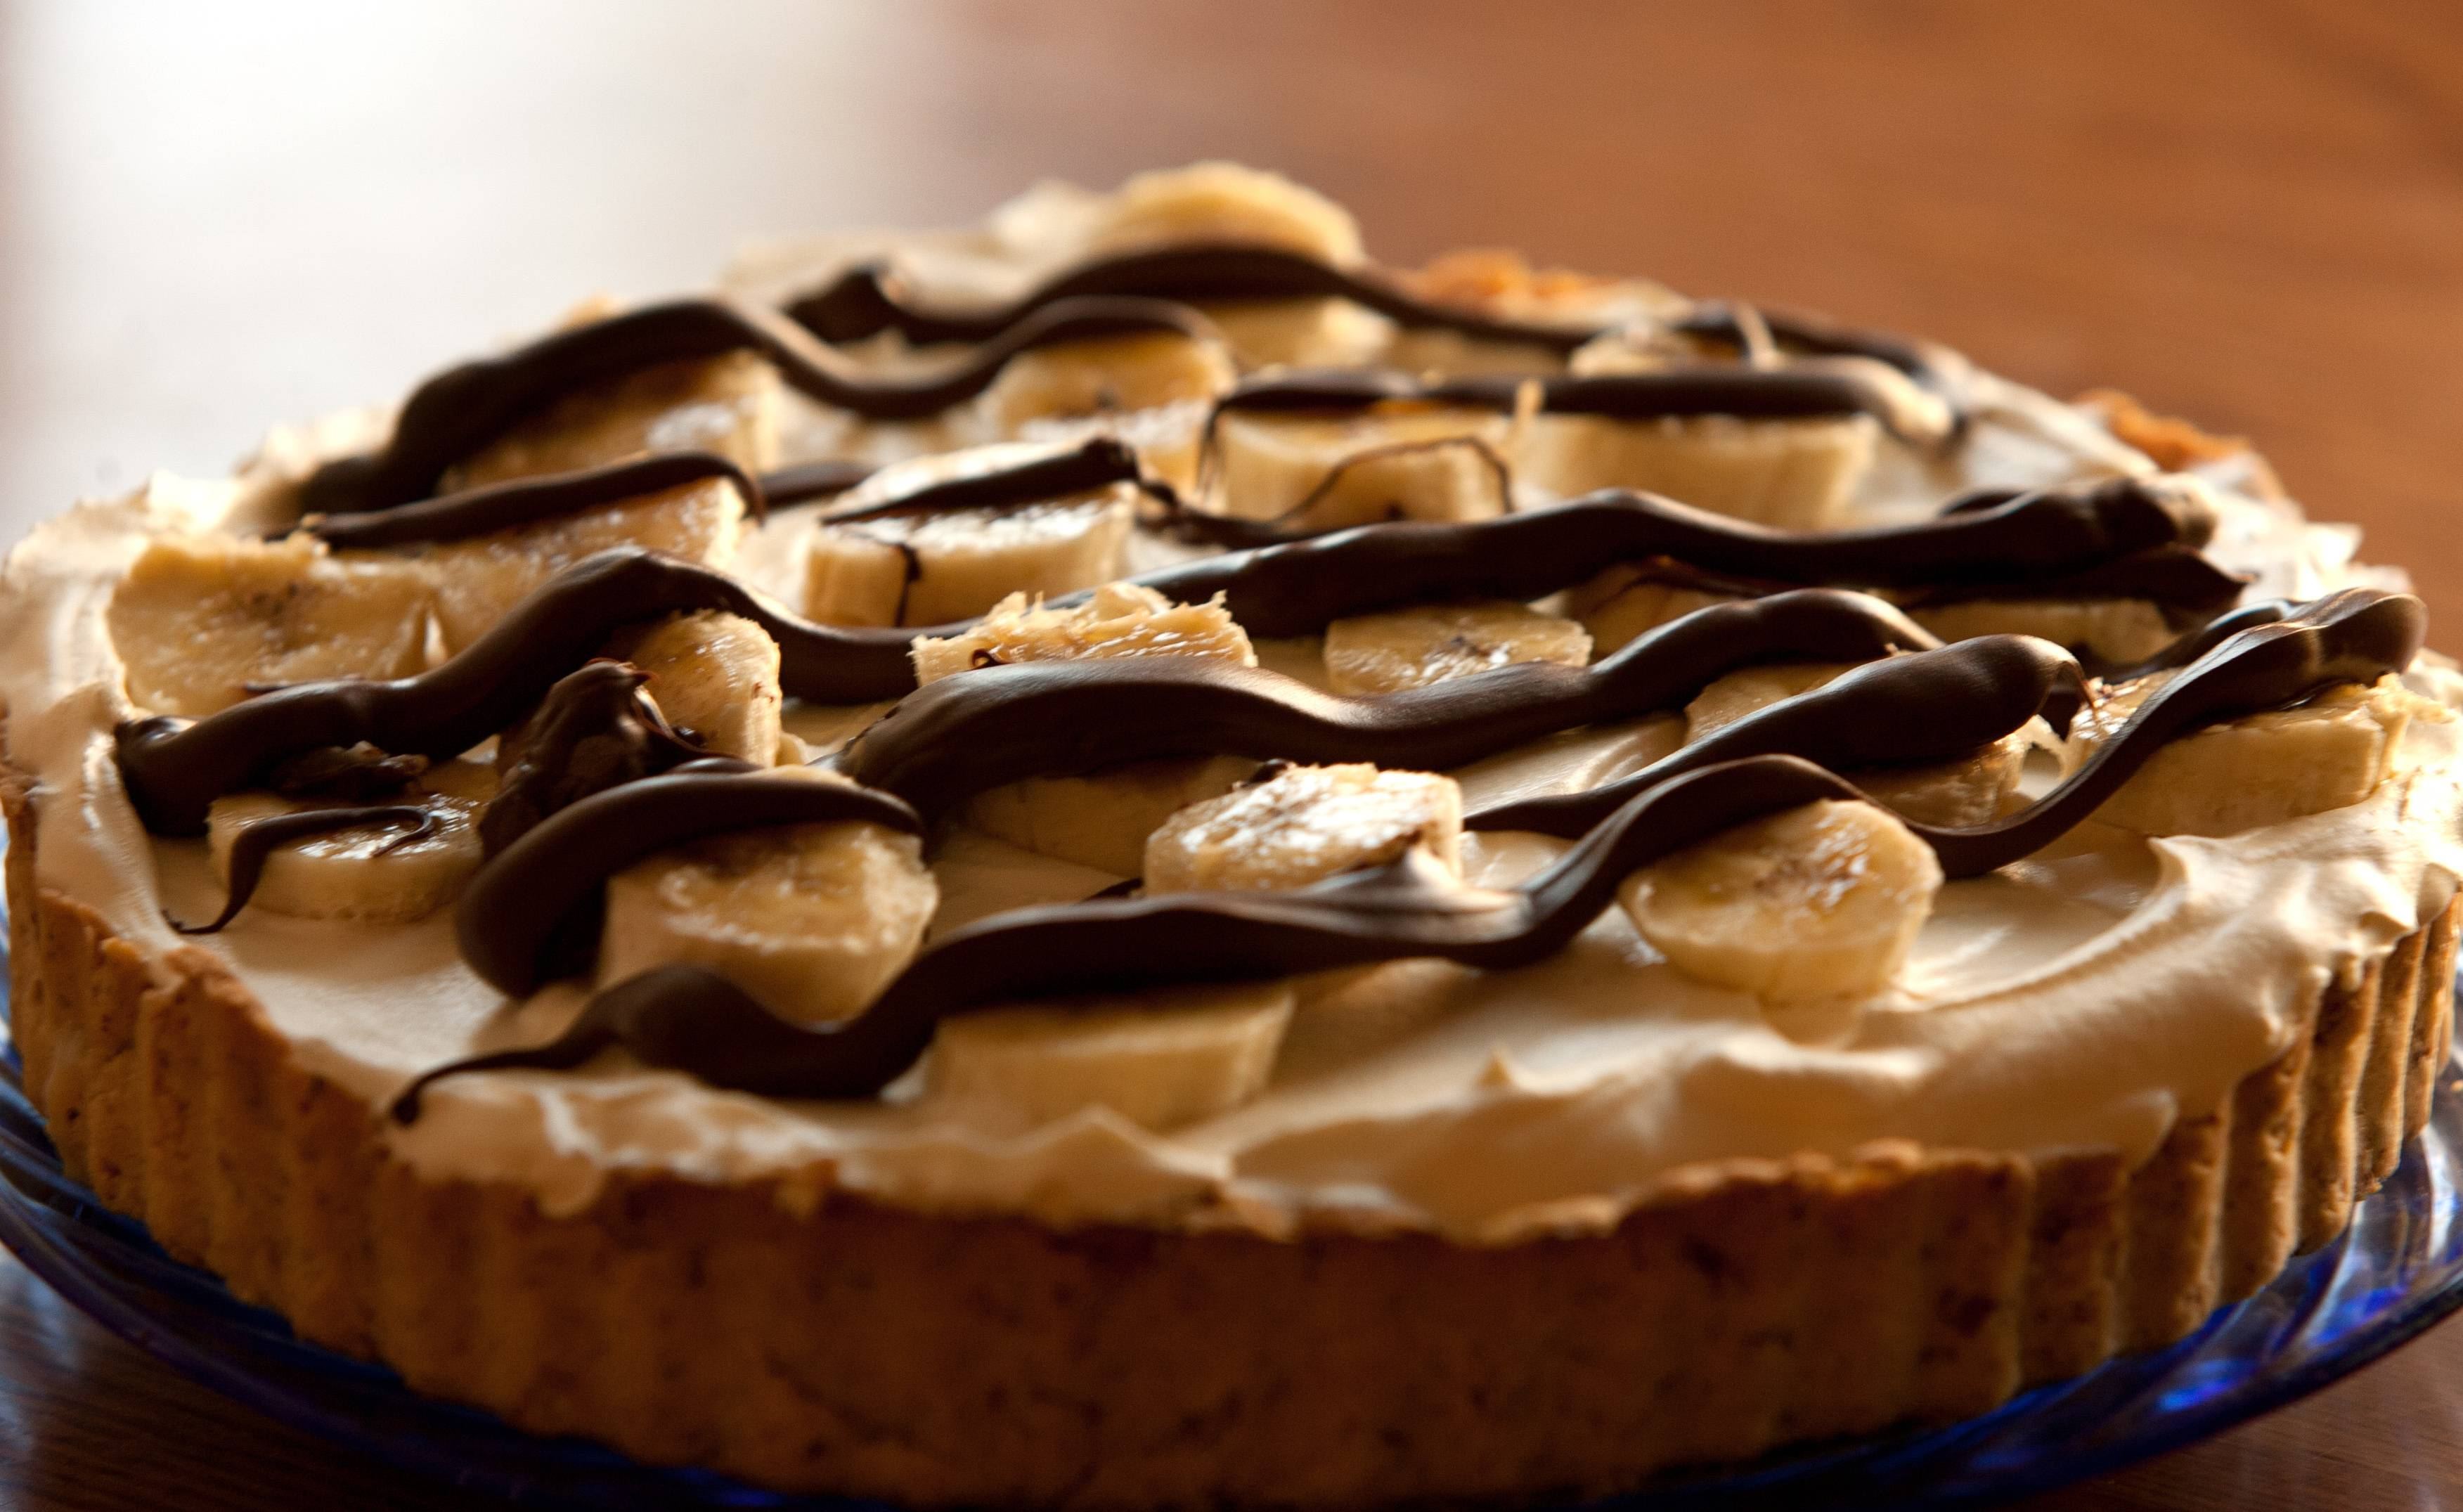 Banana Caramel Pie is an easy-to-make summer dessert.